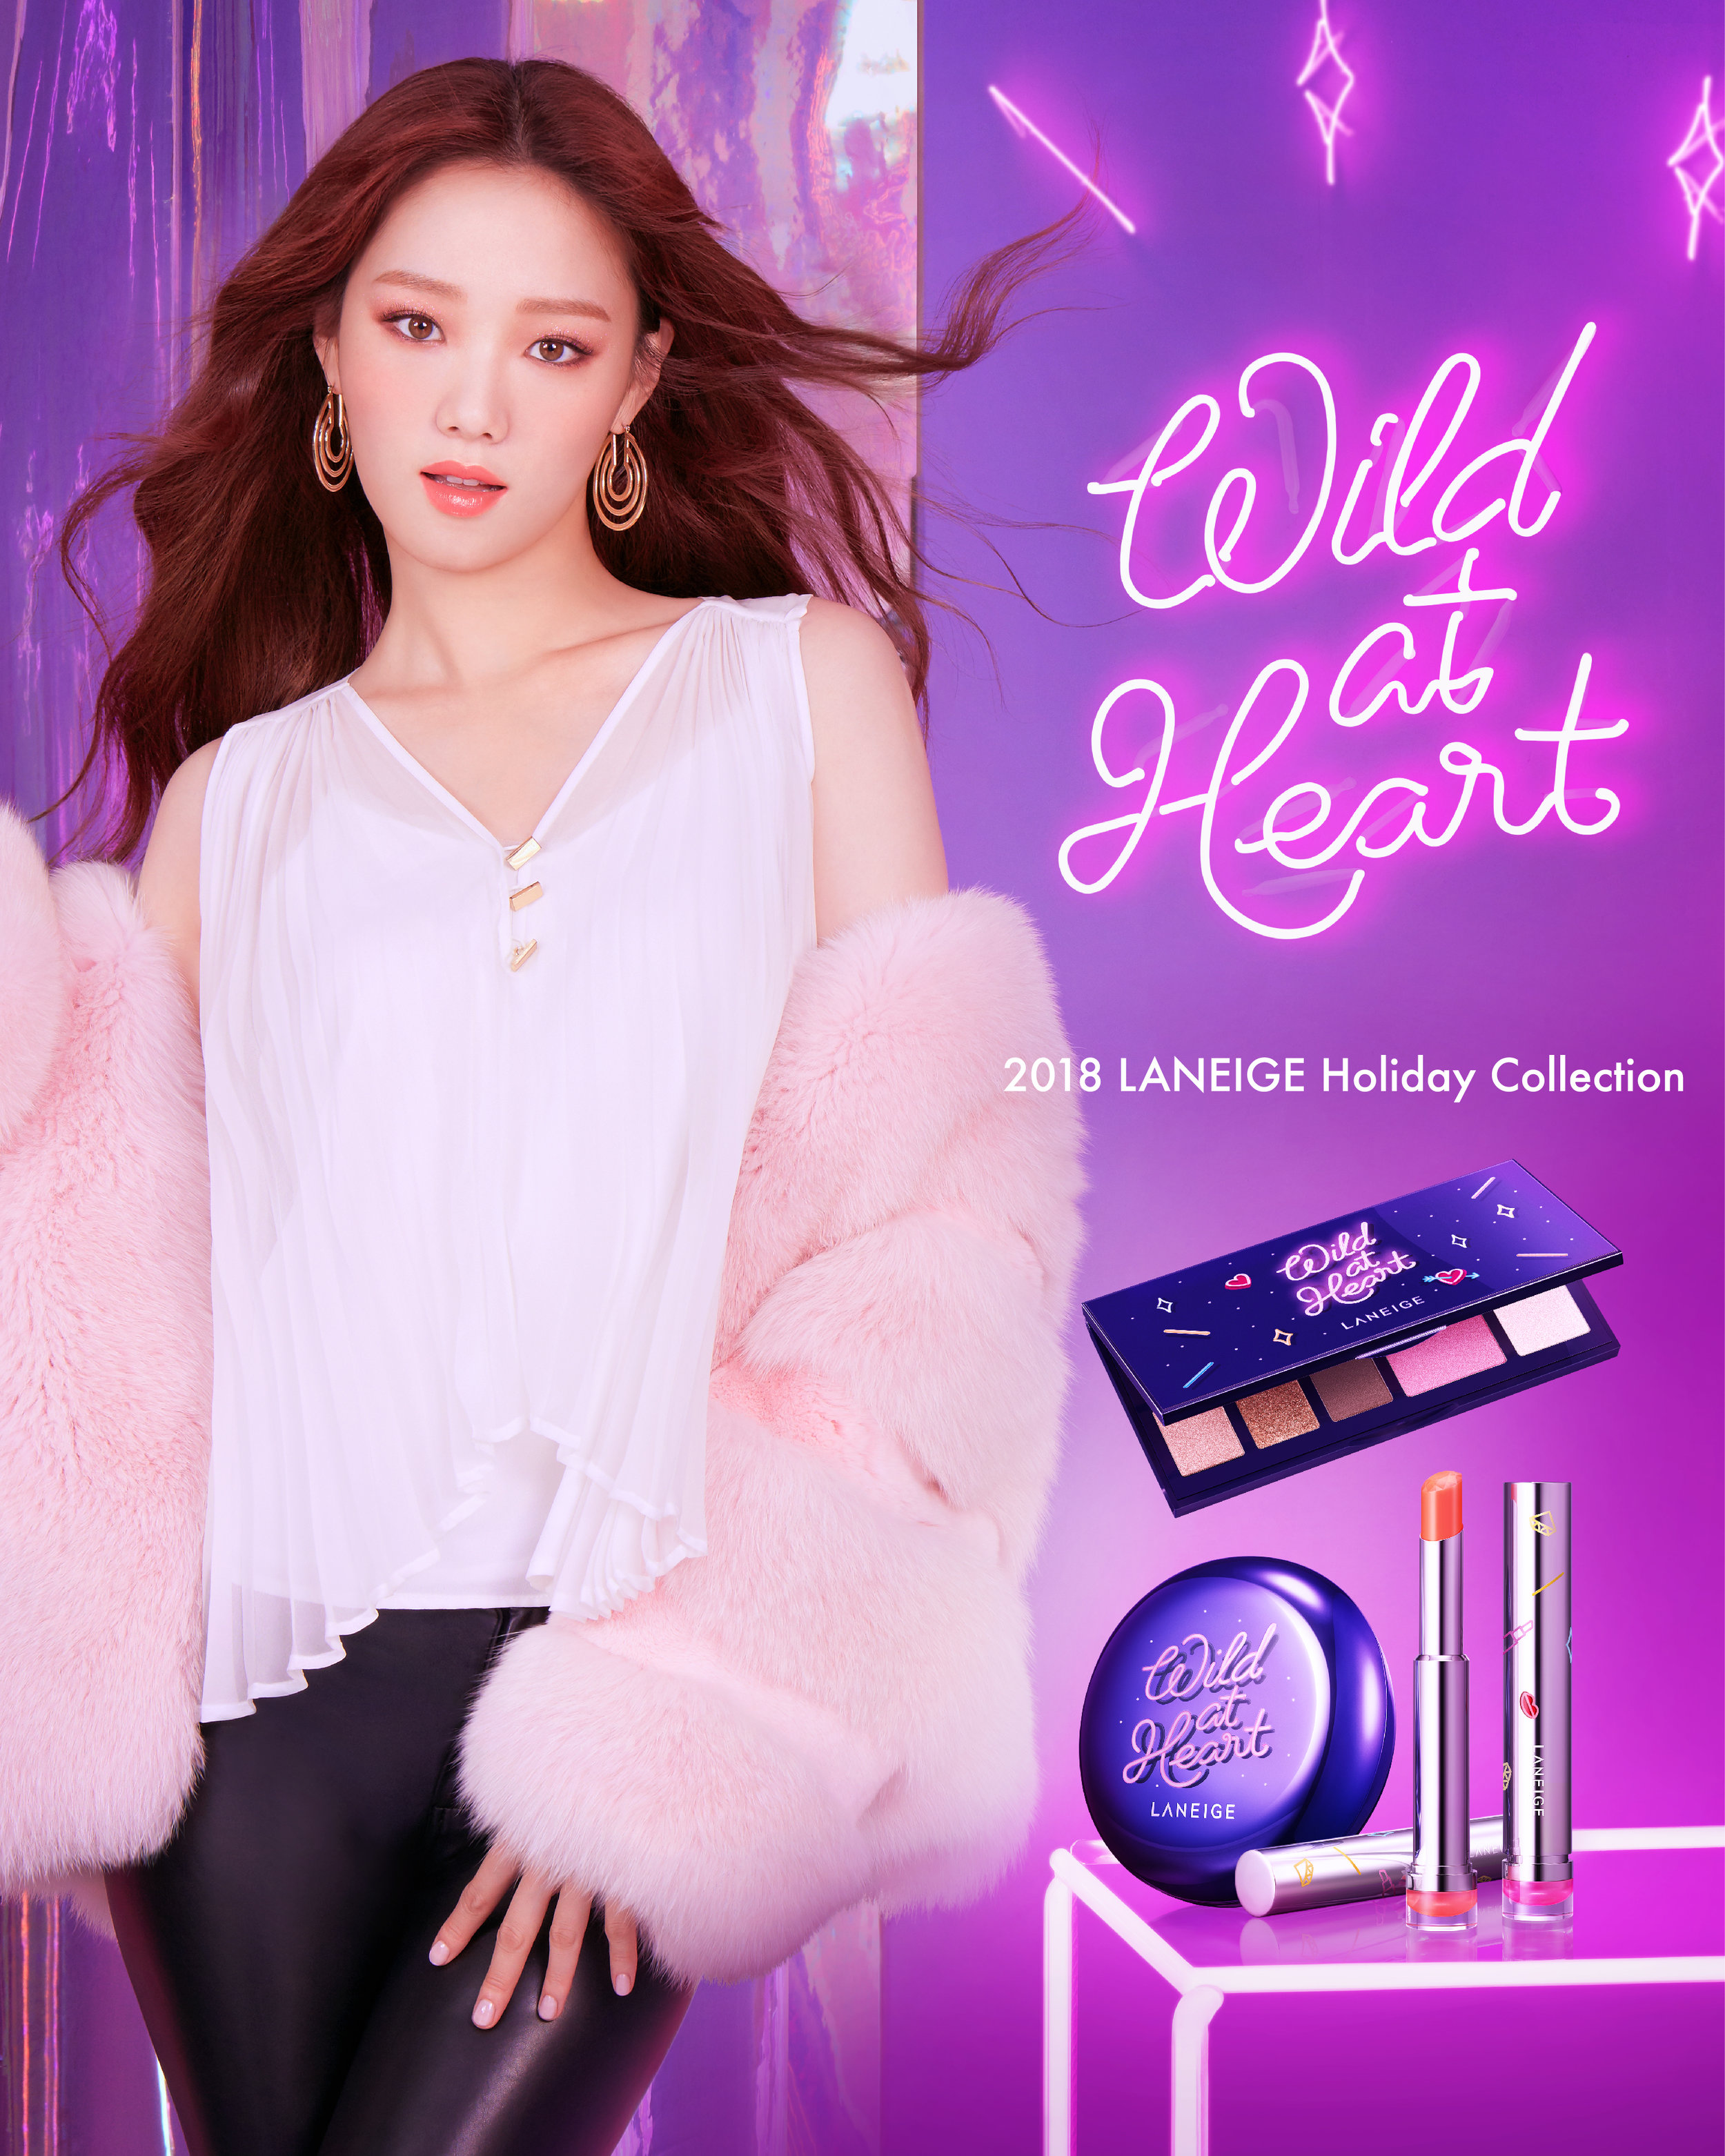 Laneige_Holiday Collection_2018_VMD_Model_Eng_1x1.25.jpg